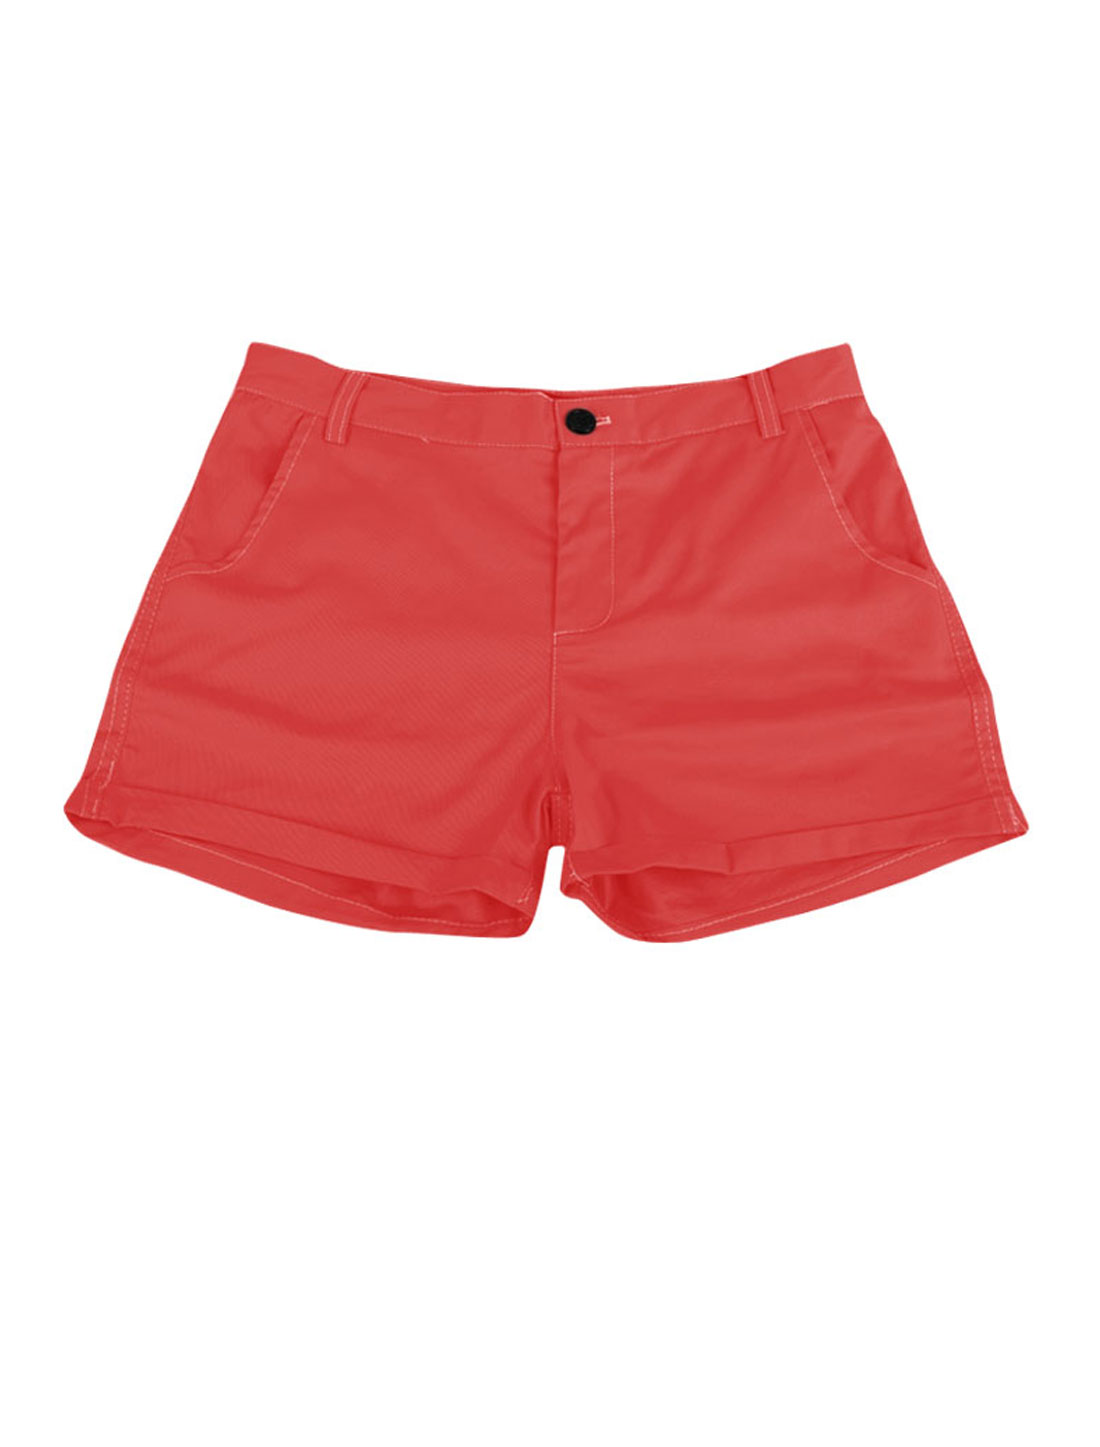 Ladies Slant Pockets Hip Pockets Summer Mini Shorts Red S